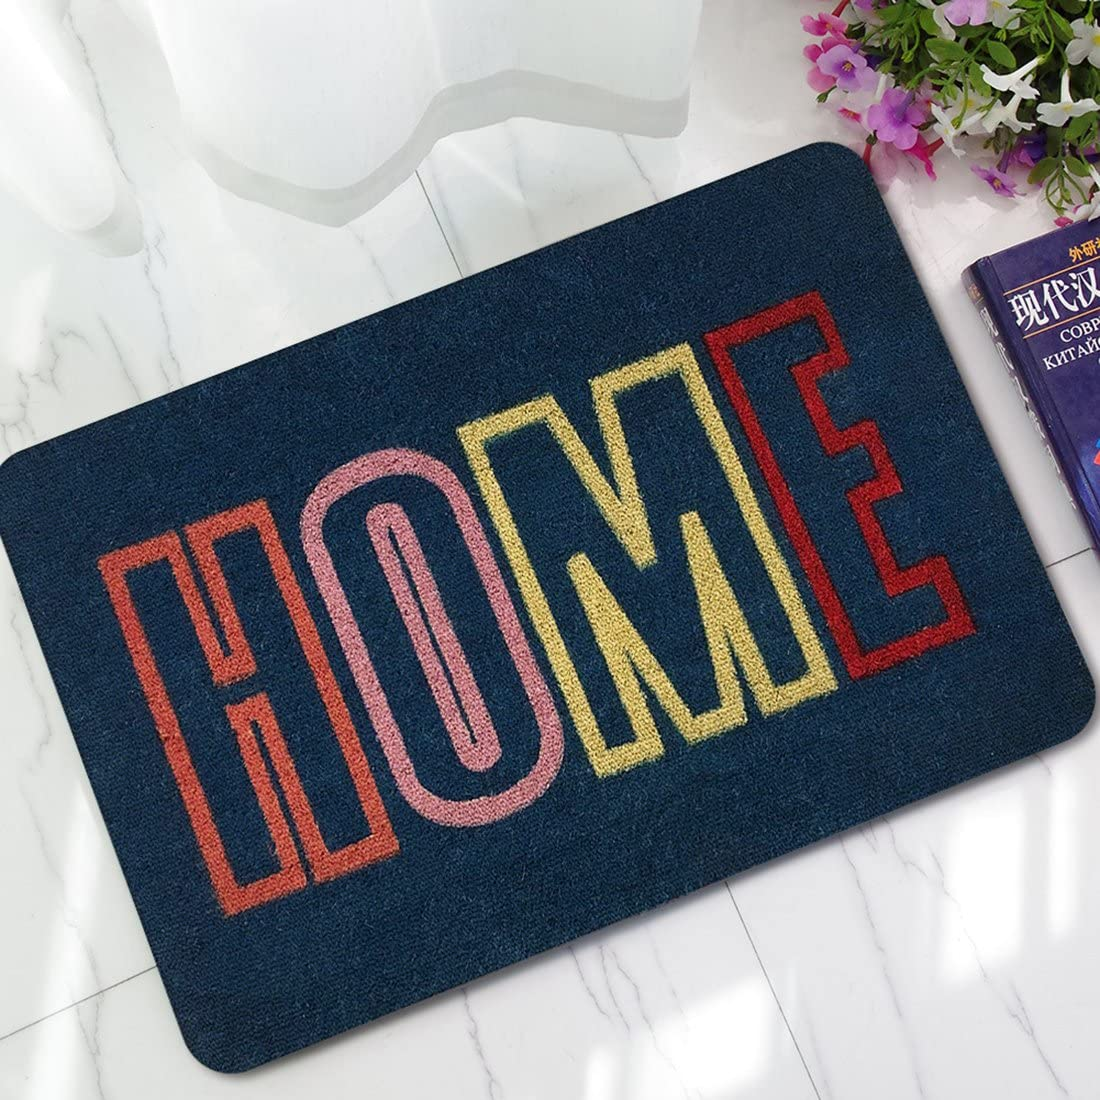 HBOS Non-Slip Modern Entrance Floor Mat Indoor//Outdoor//Bathroom//Living Room//Kitchen Mats-17.7x27.6inch